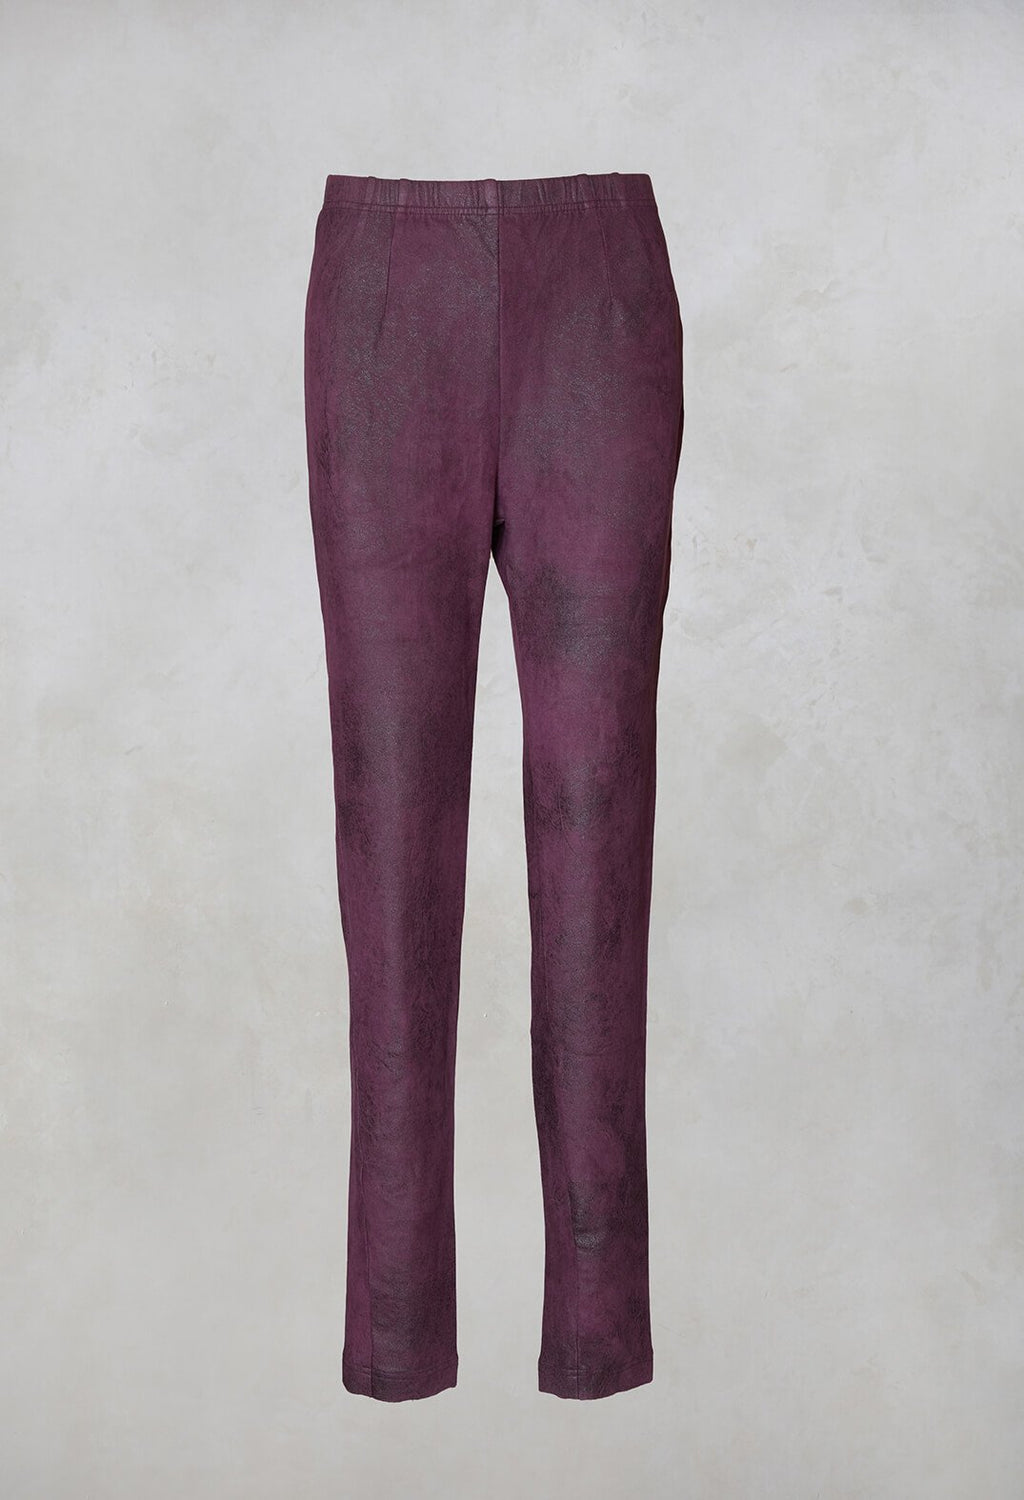 Leather Look Leggings in Merlot